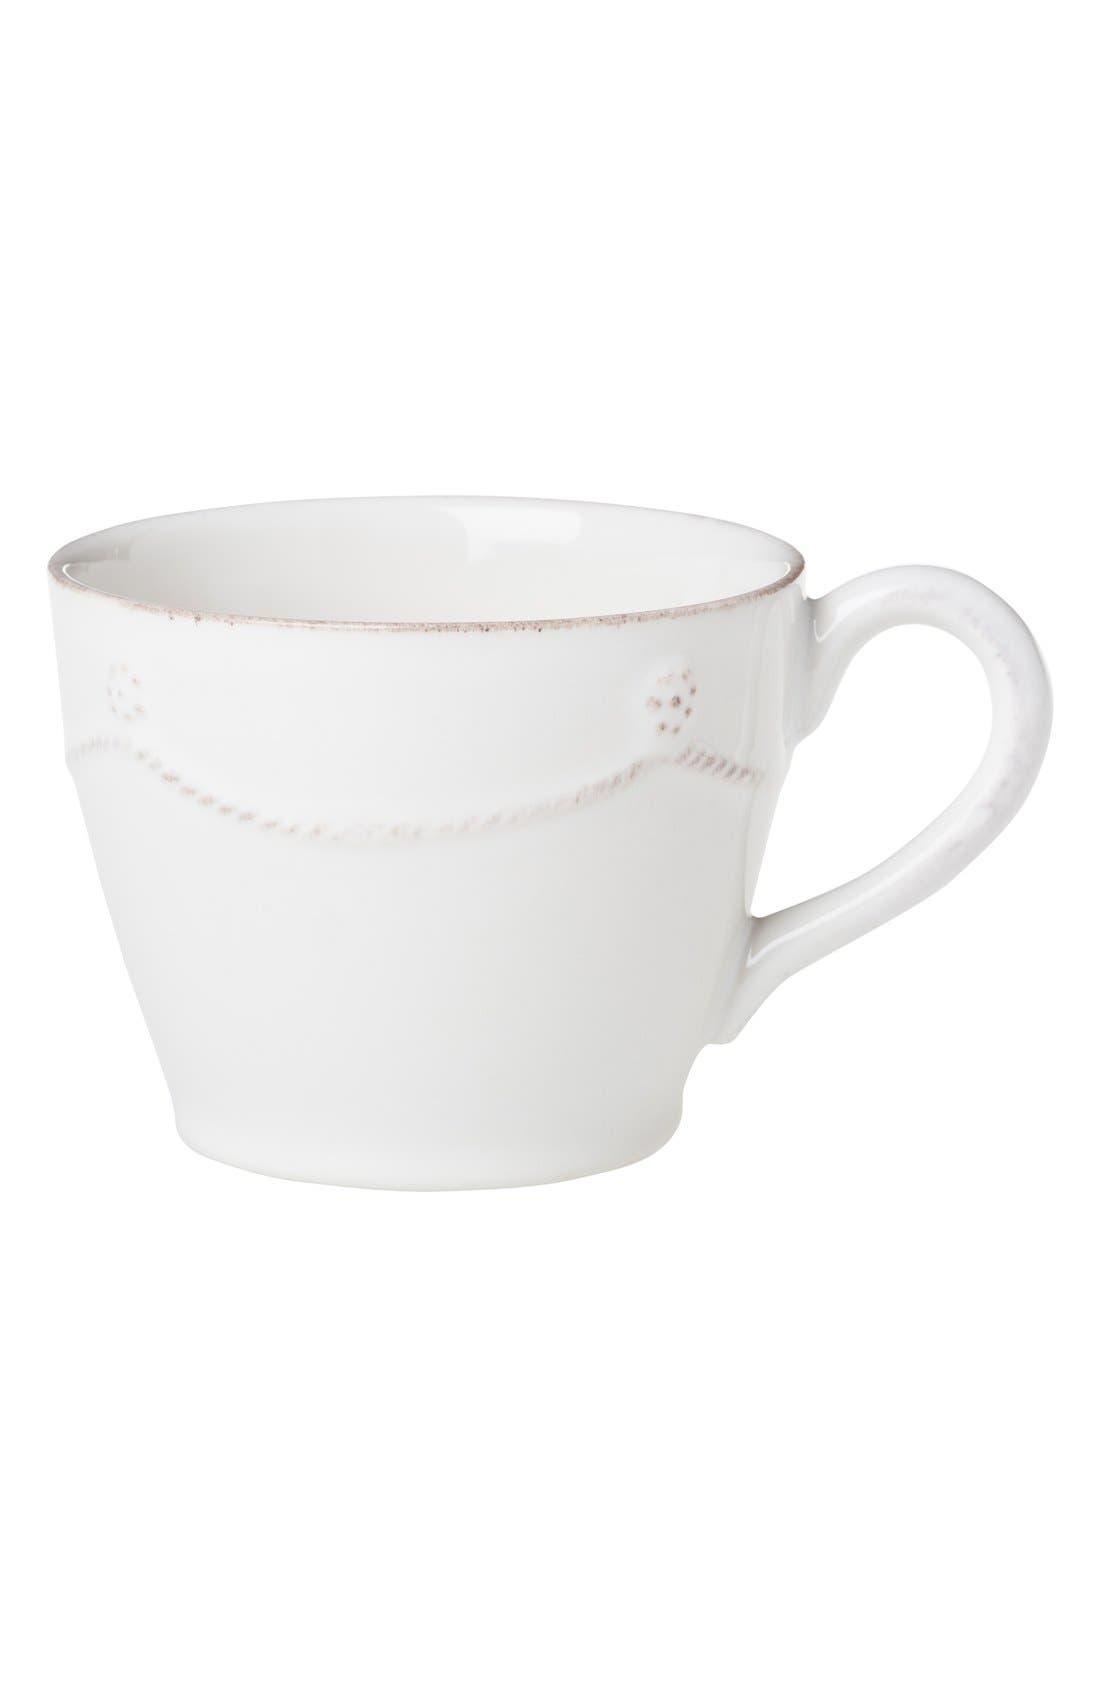 'Berry and Thread' Tea &Coffee Cup,                             Main thumbnail 1, color,                             100